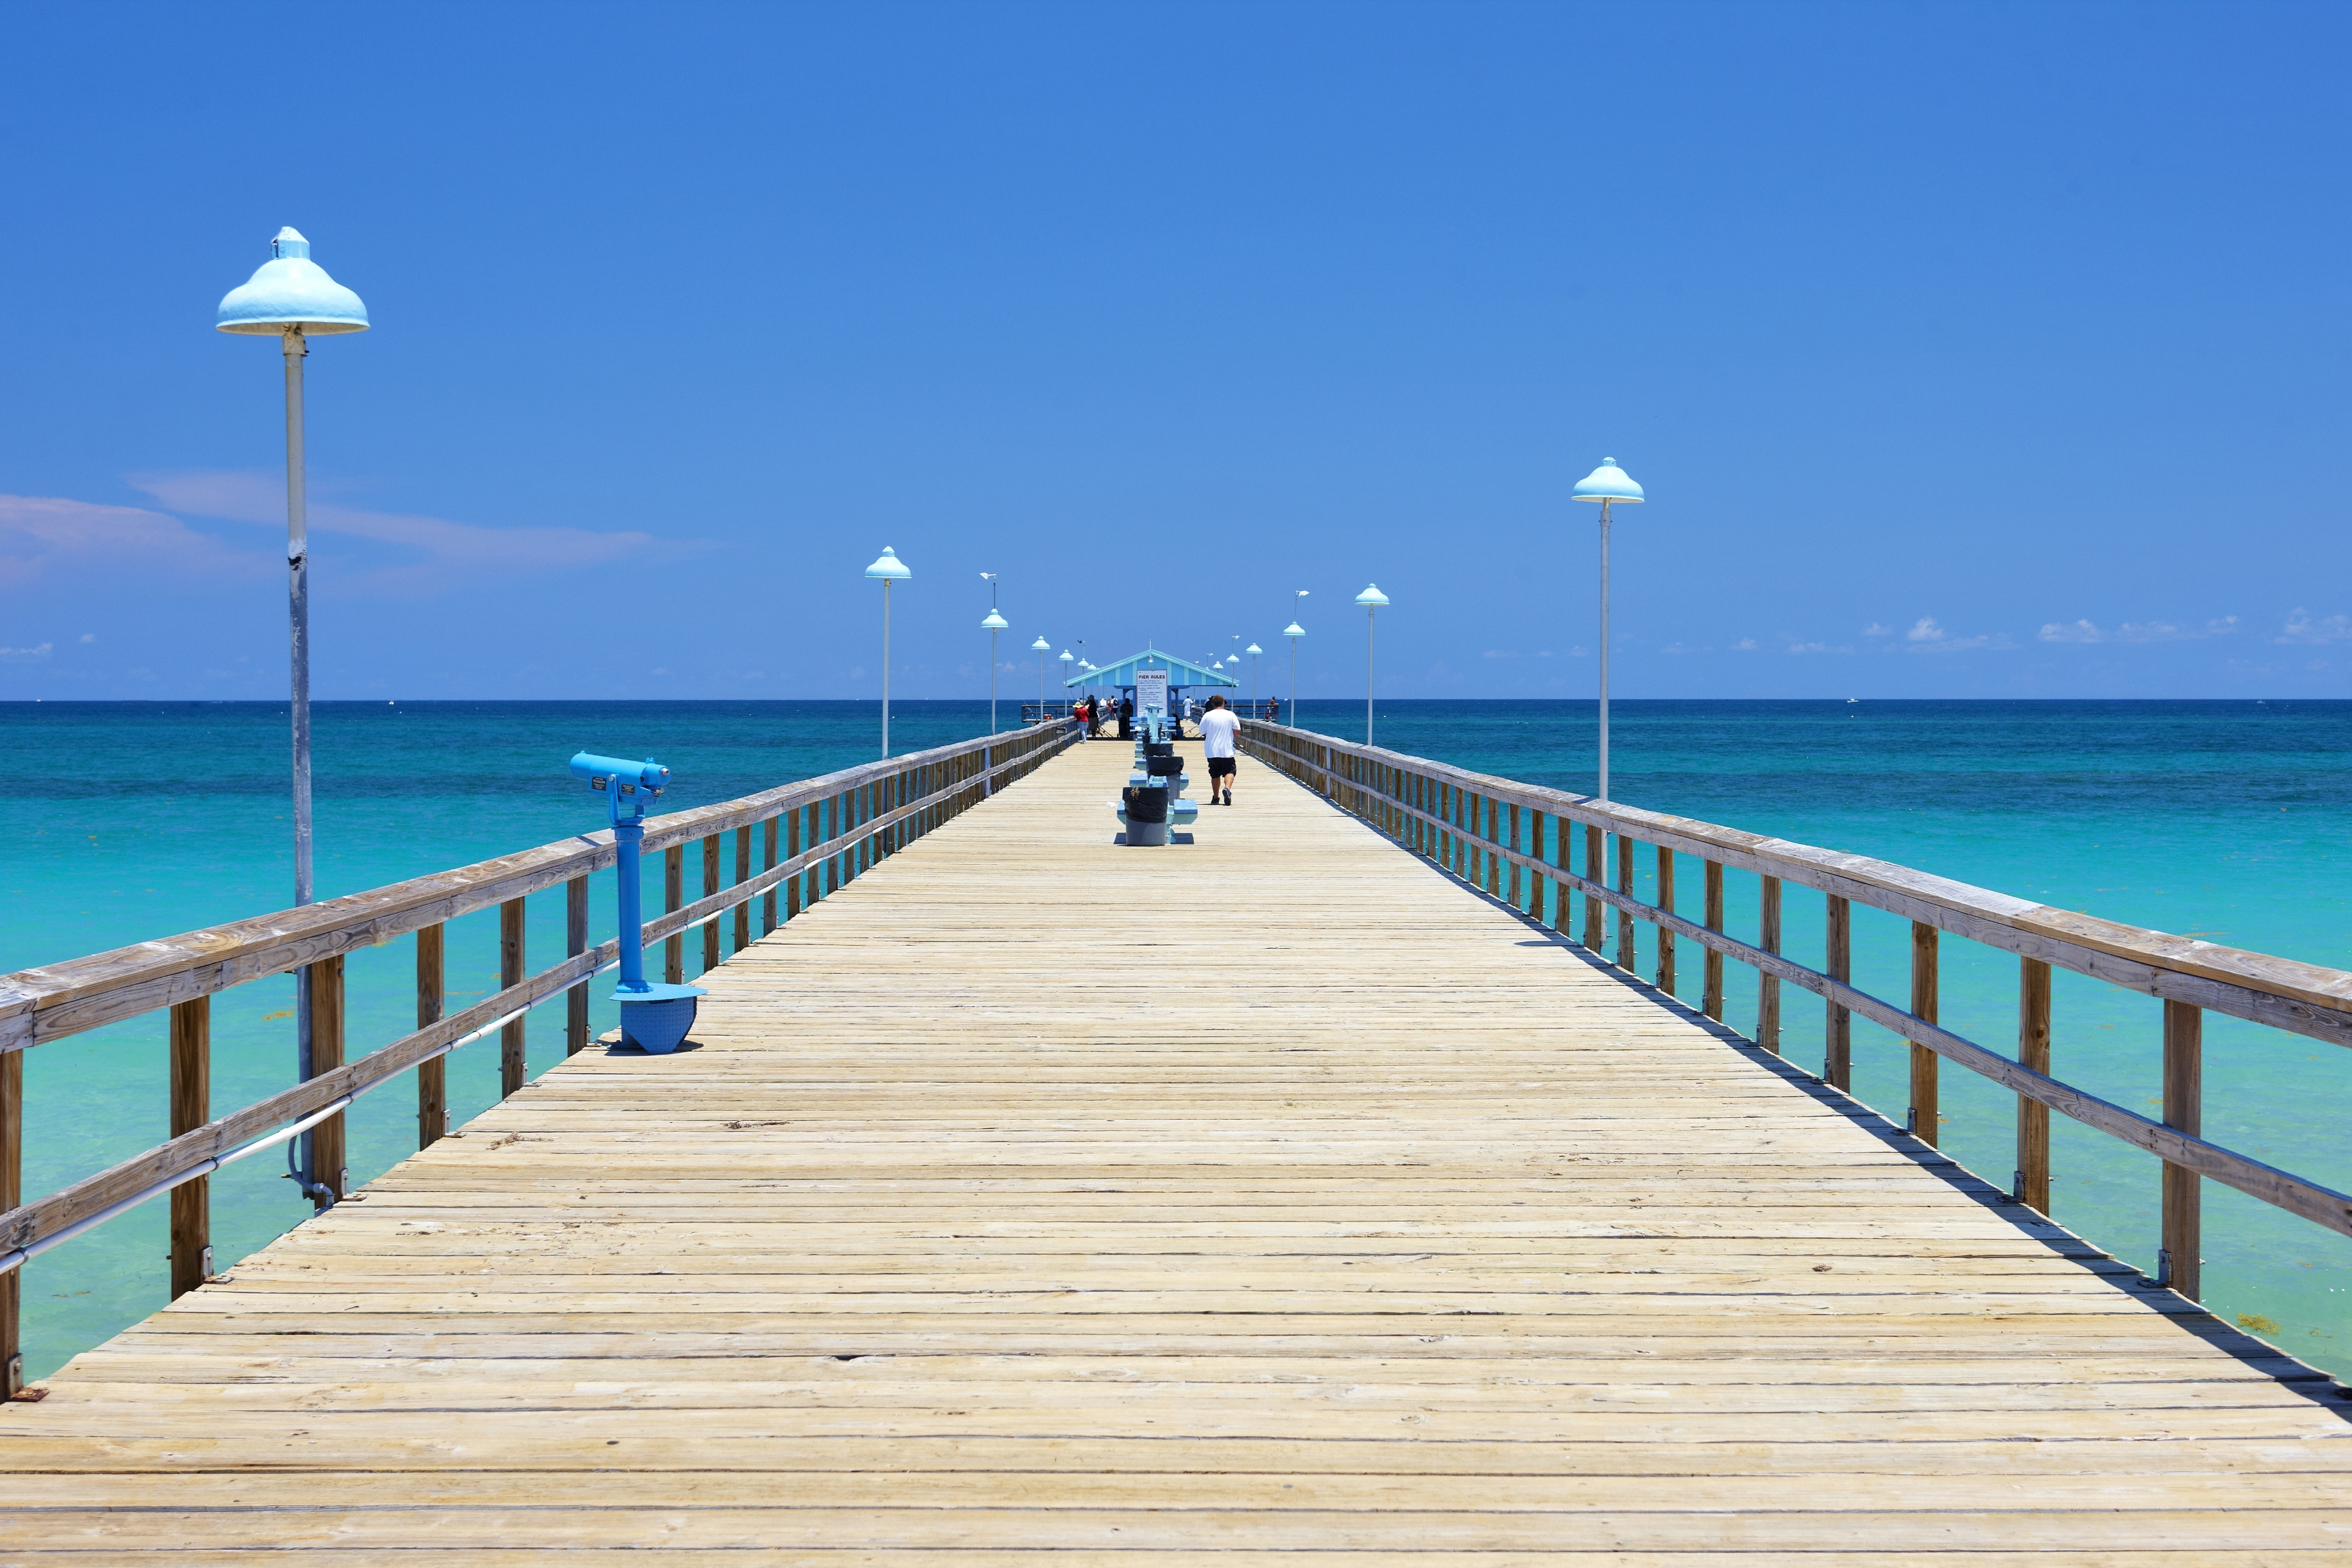 Lauderdale-by-the-Sea, Florida, United States of America